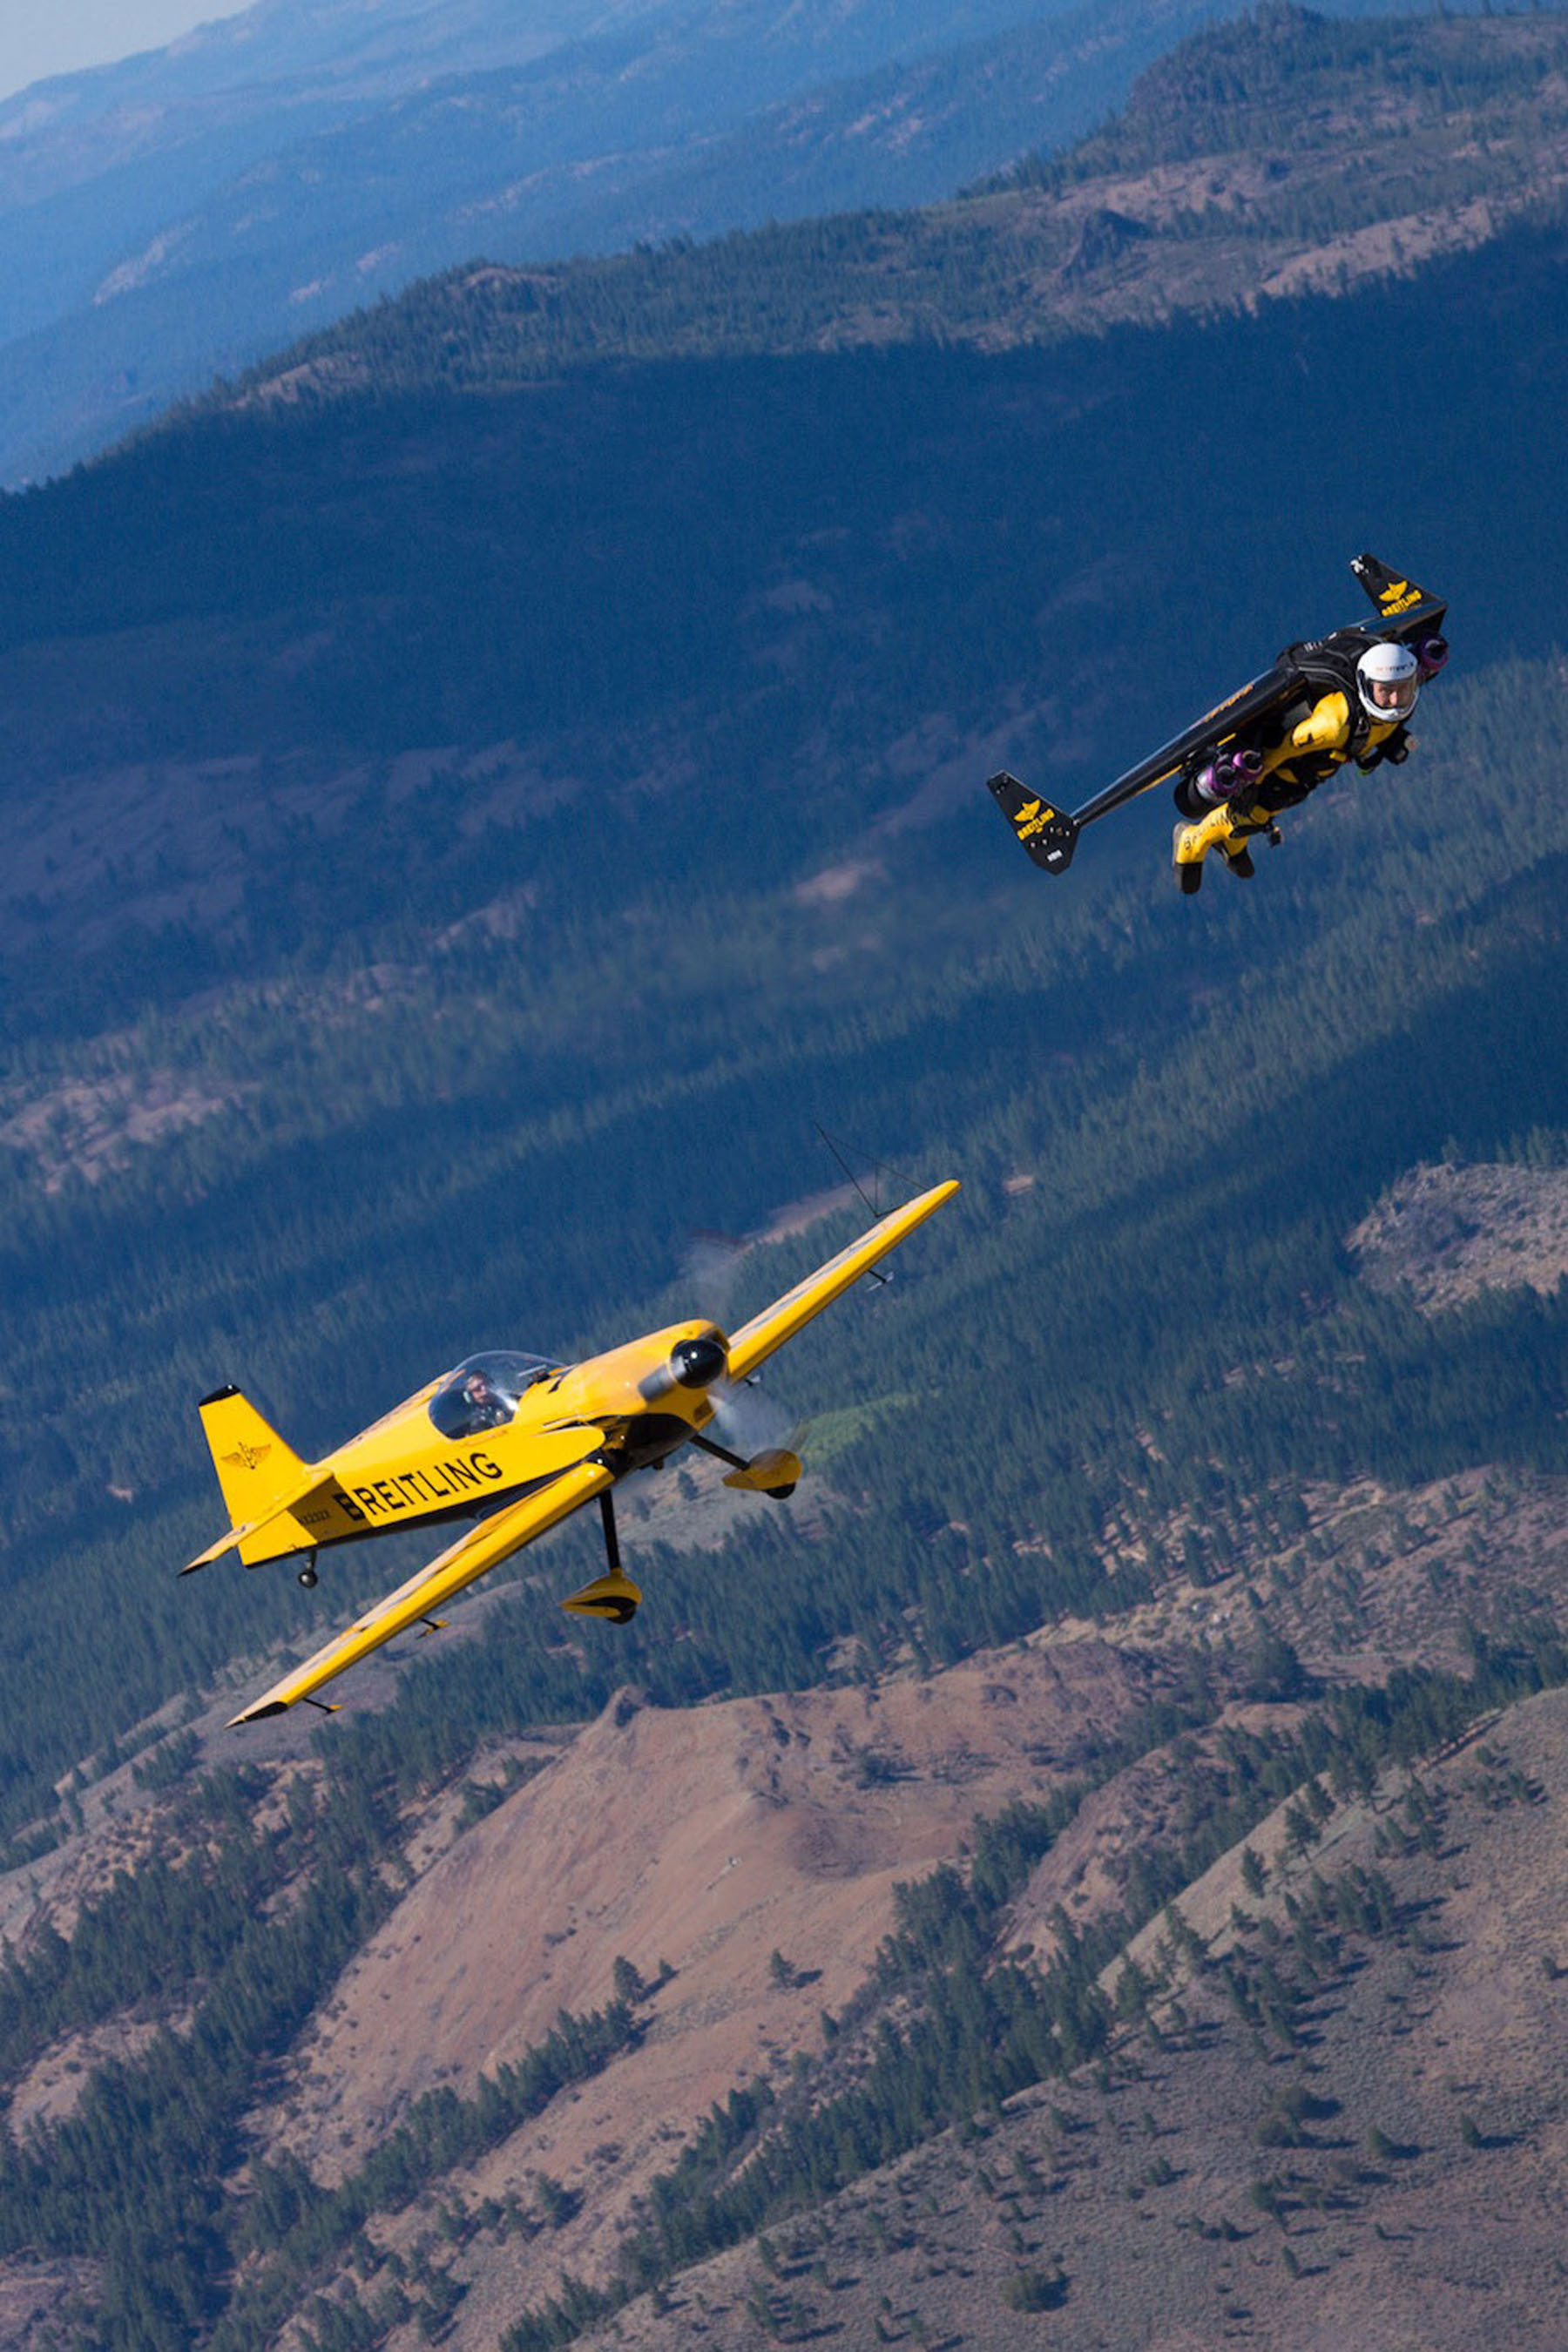 """Yves """"Jetman"""" Rossy flies over Reno with a CAP 232 plane during a test flight prior to his appearance at the National Championship Air Races. Photo Credit: Bernet, courtesy of Breitling SA. (PRNewsFoto/Breitling, Bernet) (PRNewsFoto/BREITLING)"""